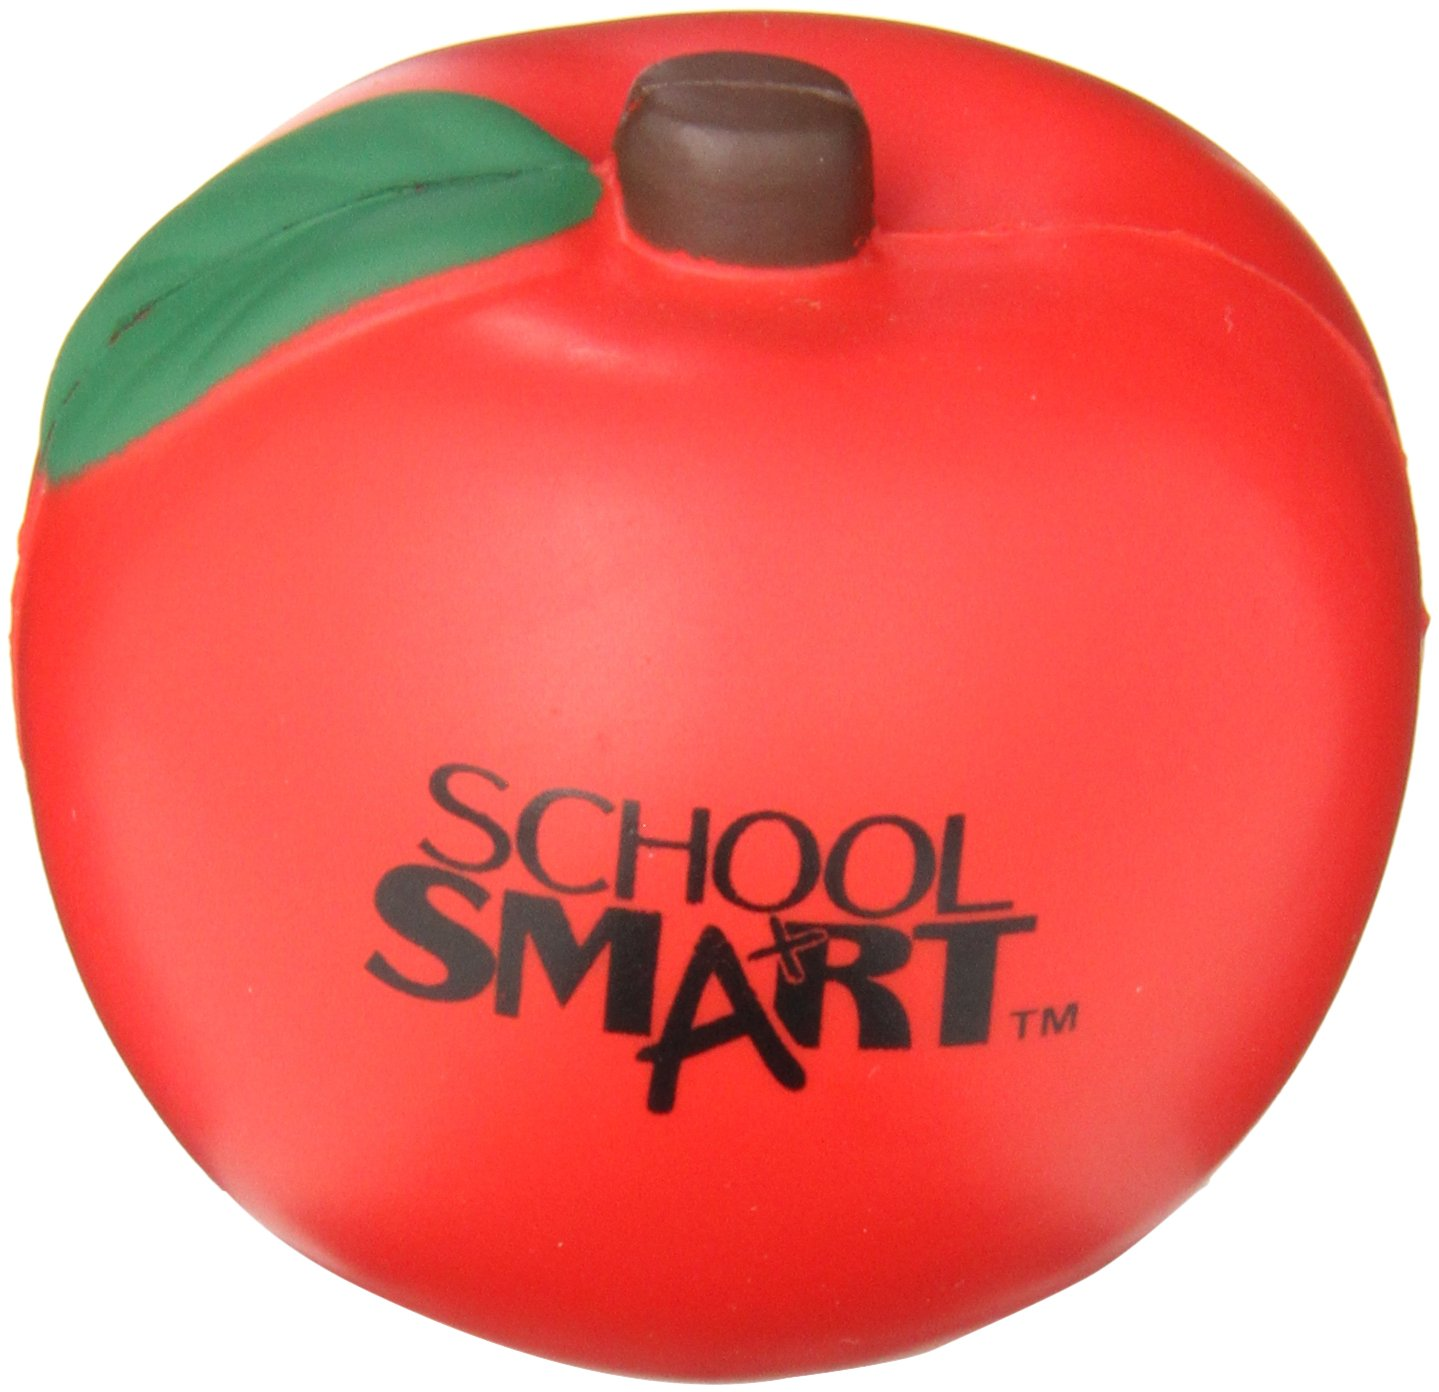 School Smart Apple Shape Stress Ball - 086351